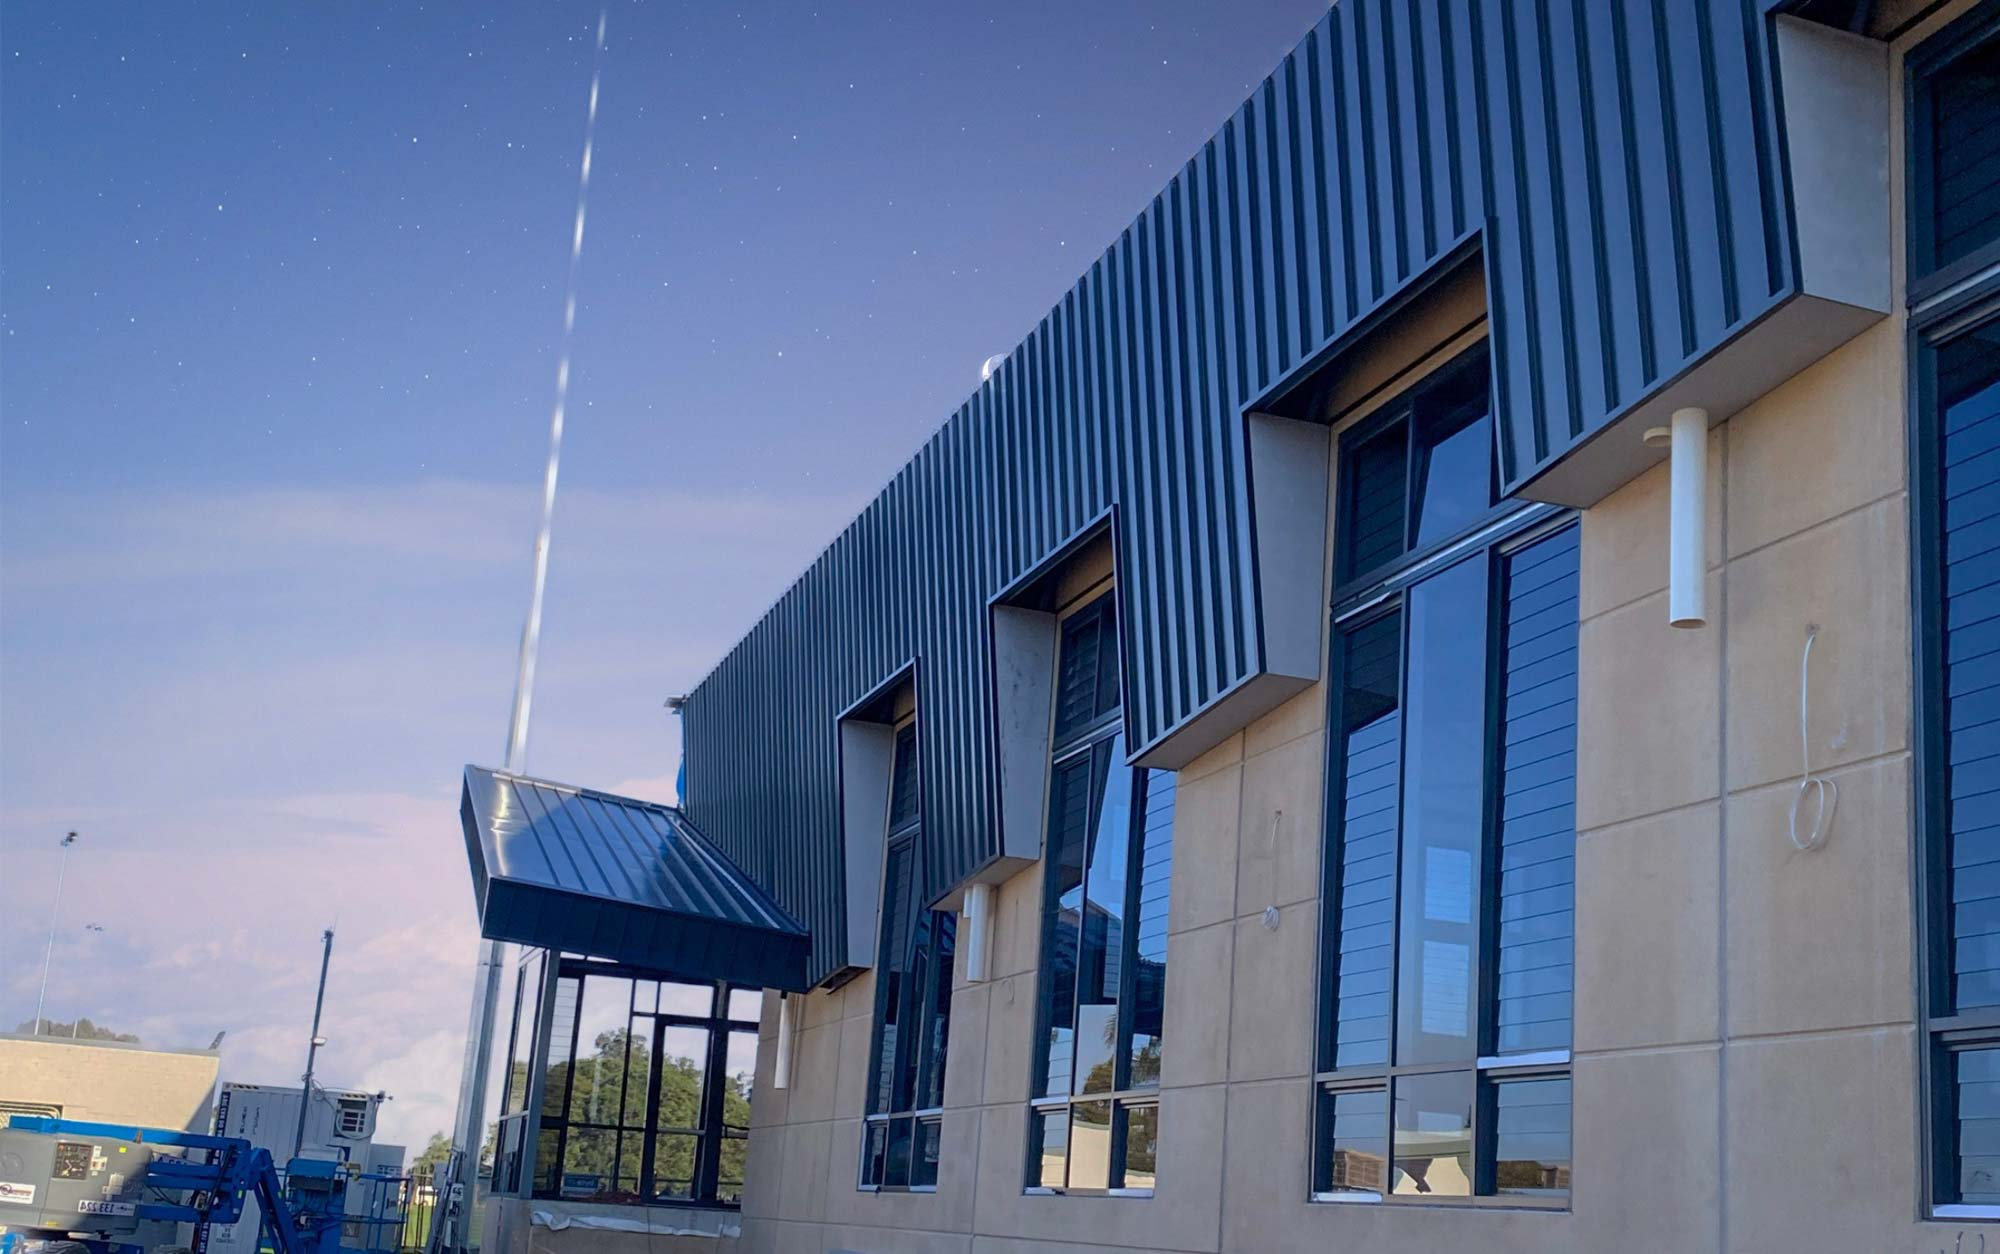 Morley Recreation Centre Exterior - Construction Project